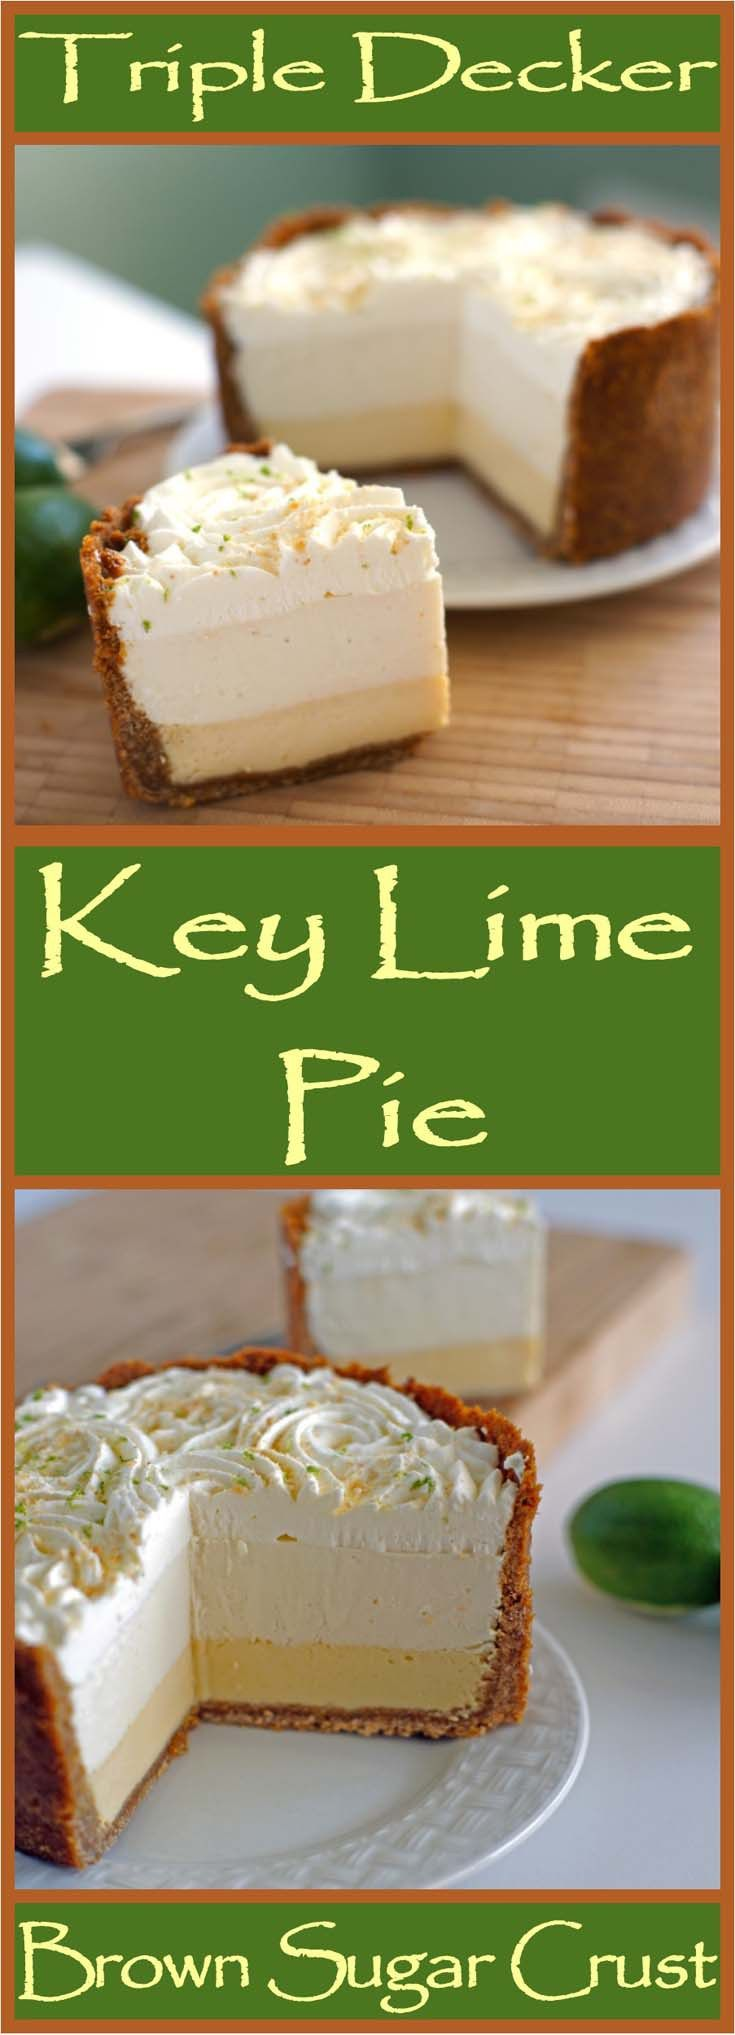 This article contains the recipe for Sweet IRB Bakery's Triple Key Lime Pie. Three layers of key lime pie fillings in a Cinnamon Graham Cracker Crust.